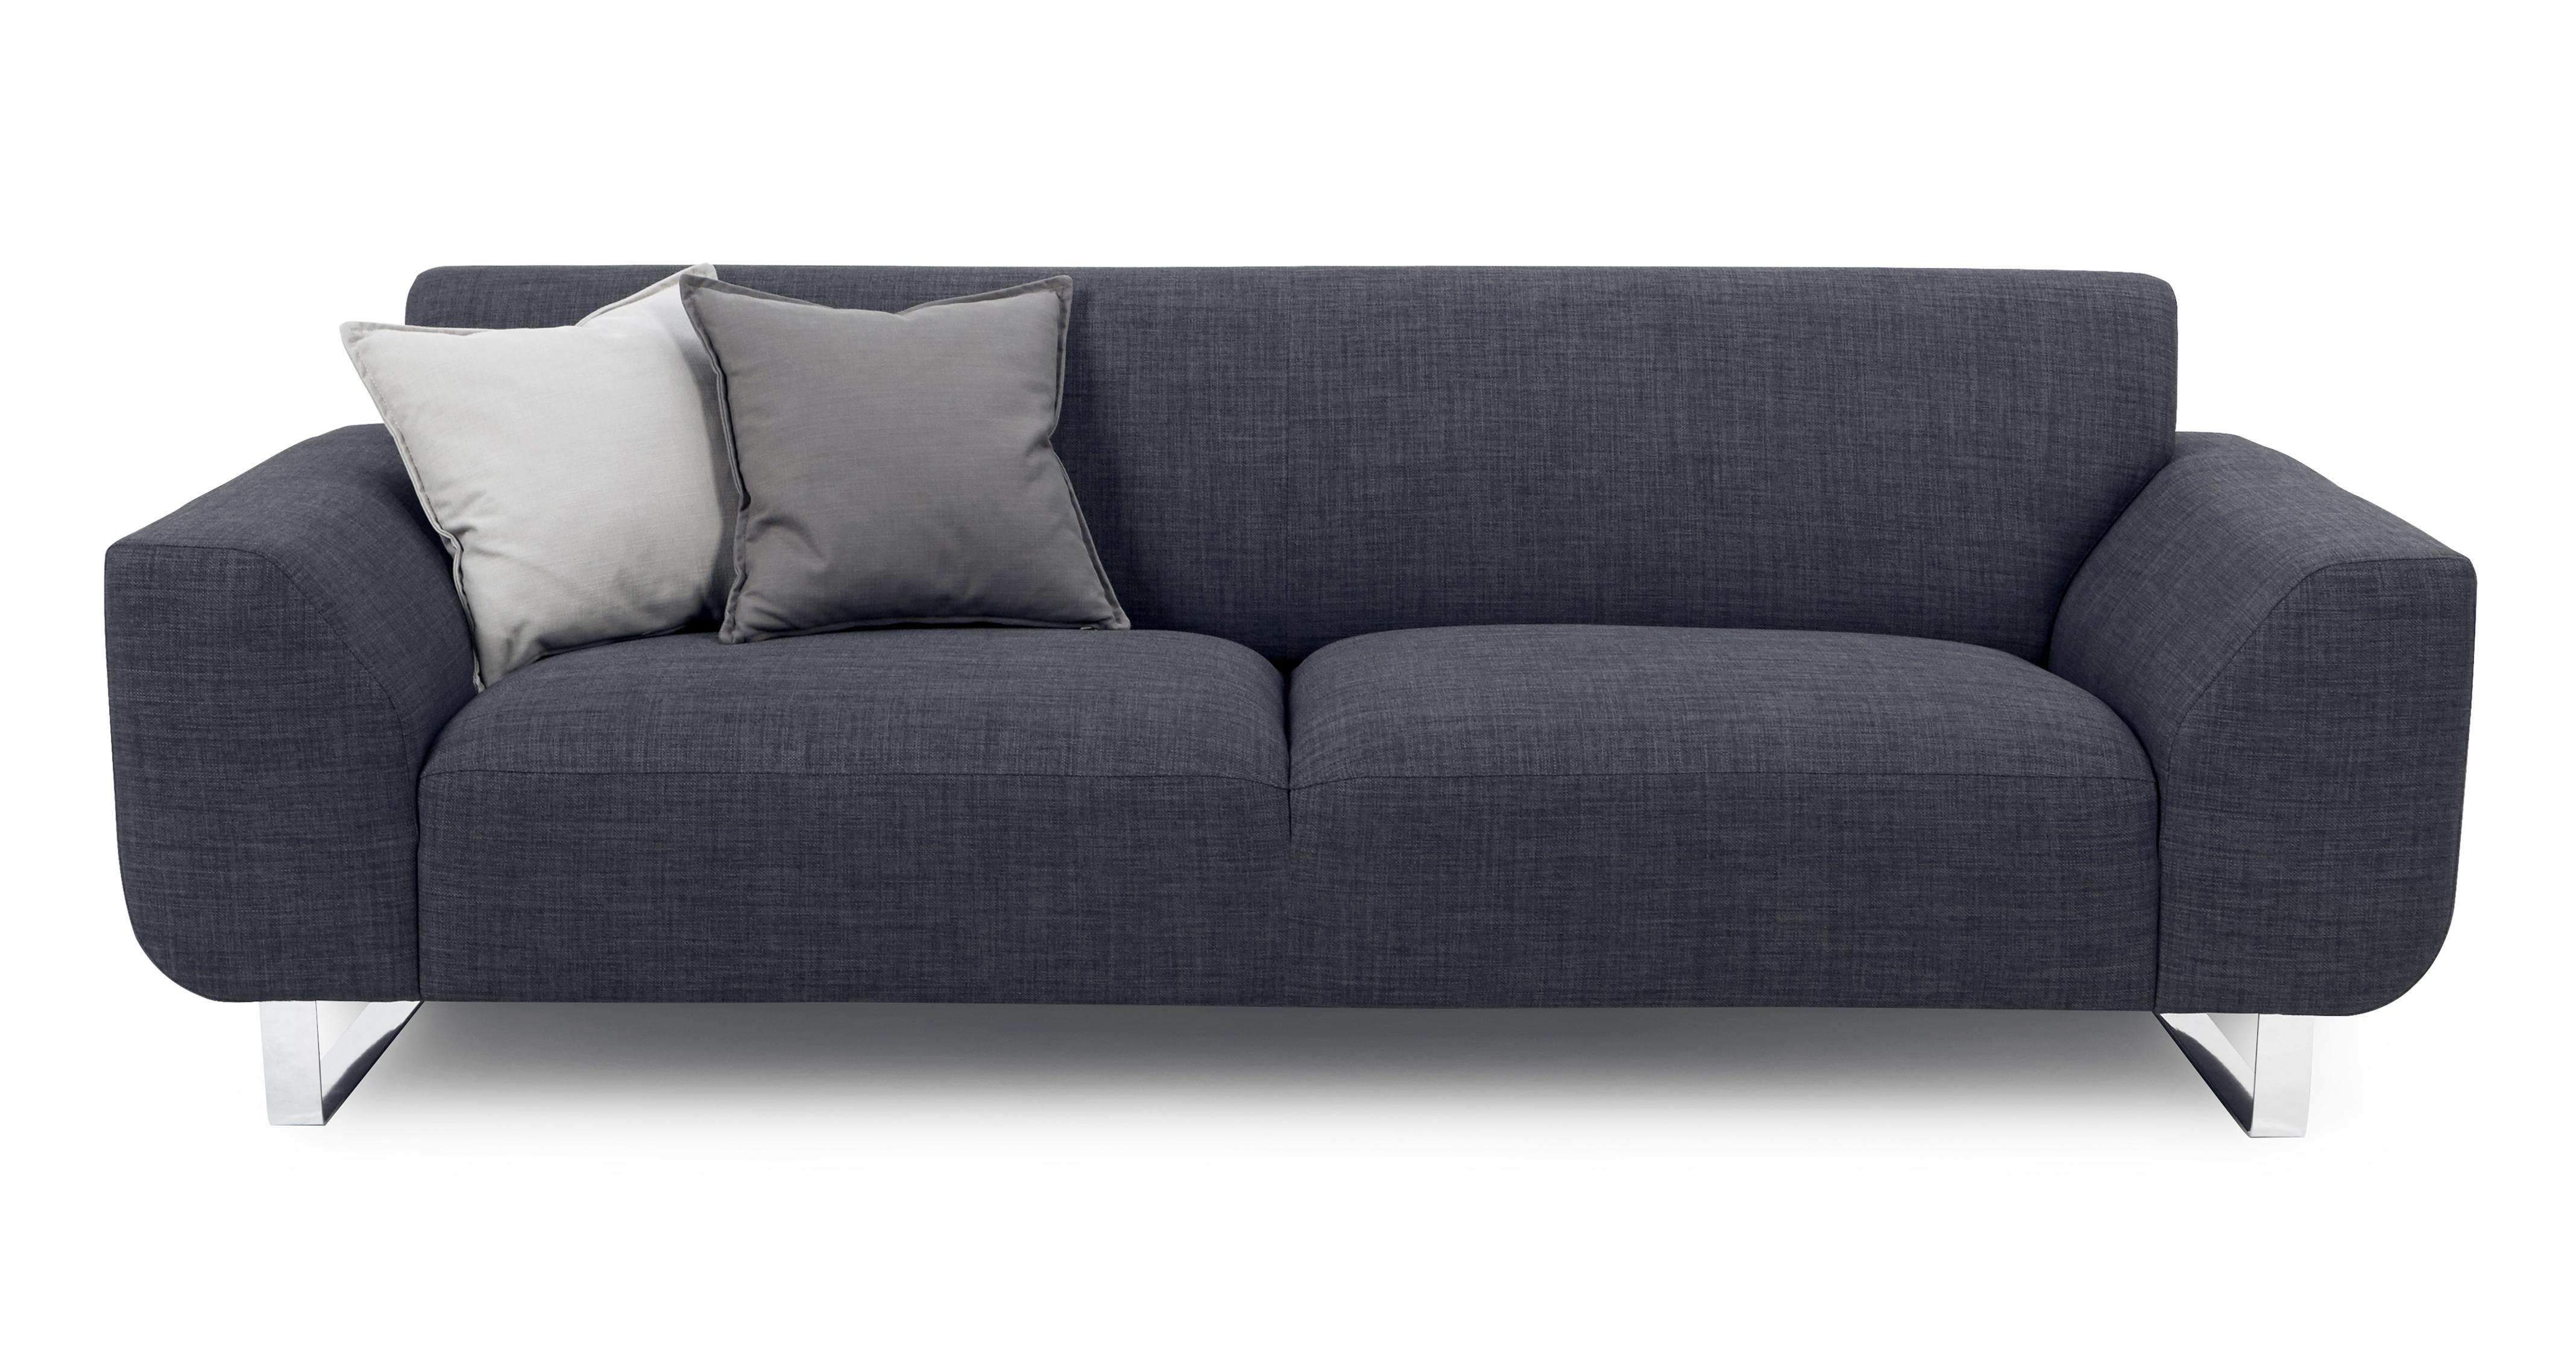 Sofa Hardy 3 Seater Sofa Revive Fabric Revive Dfs